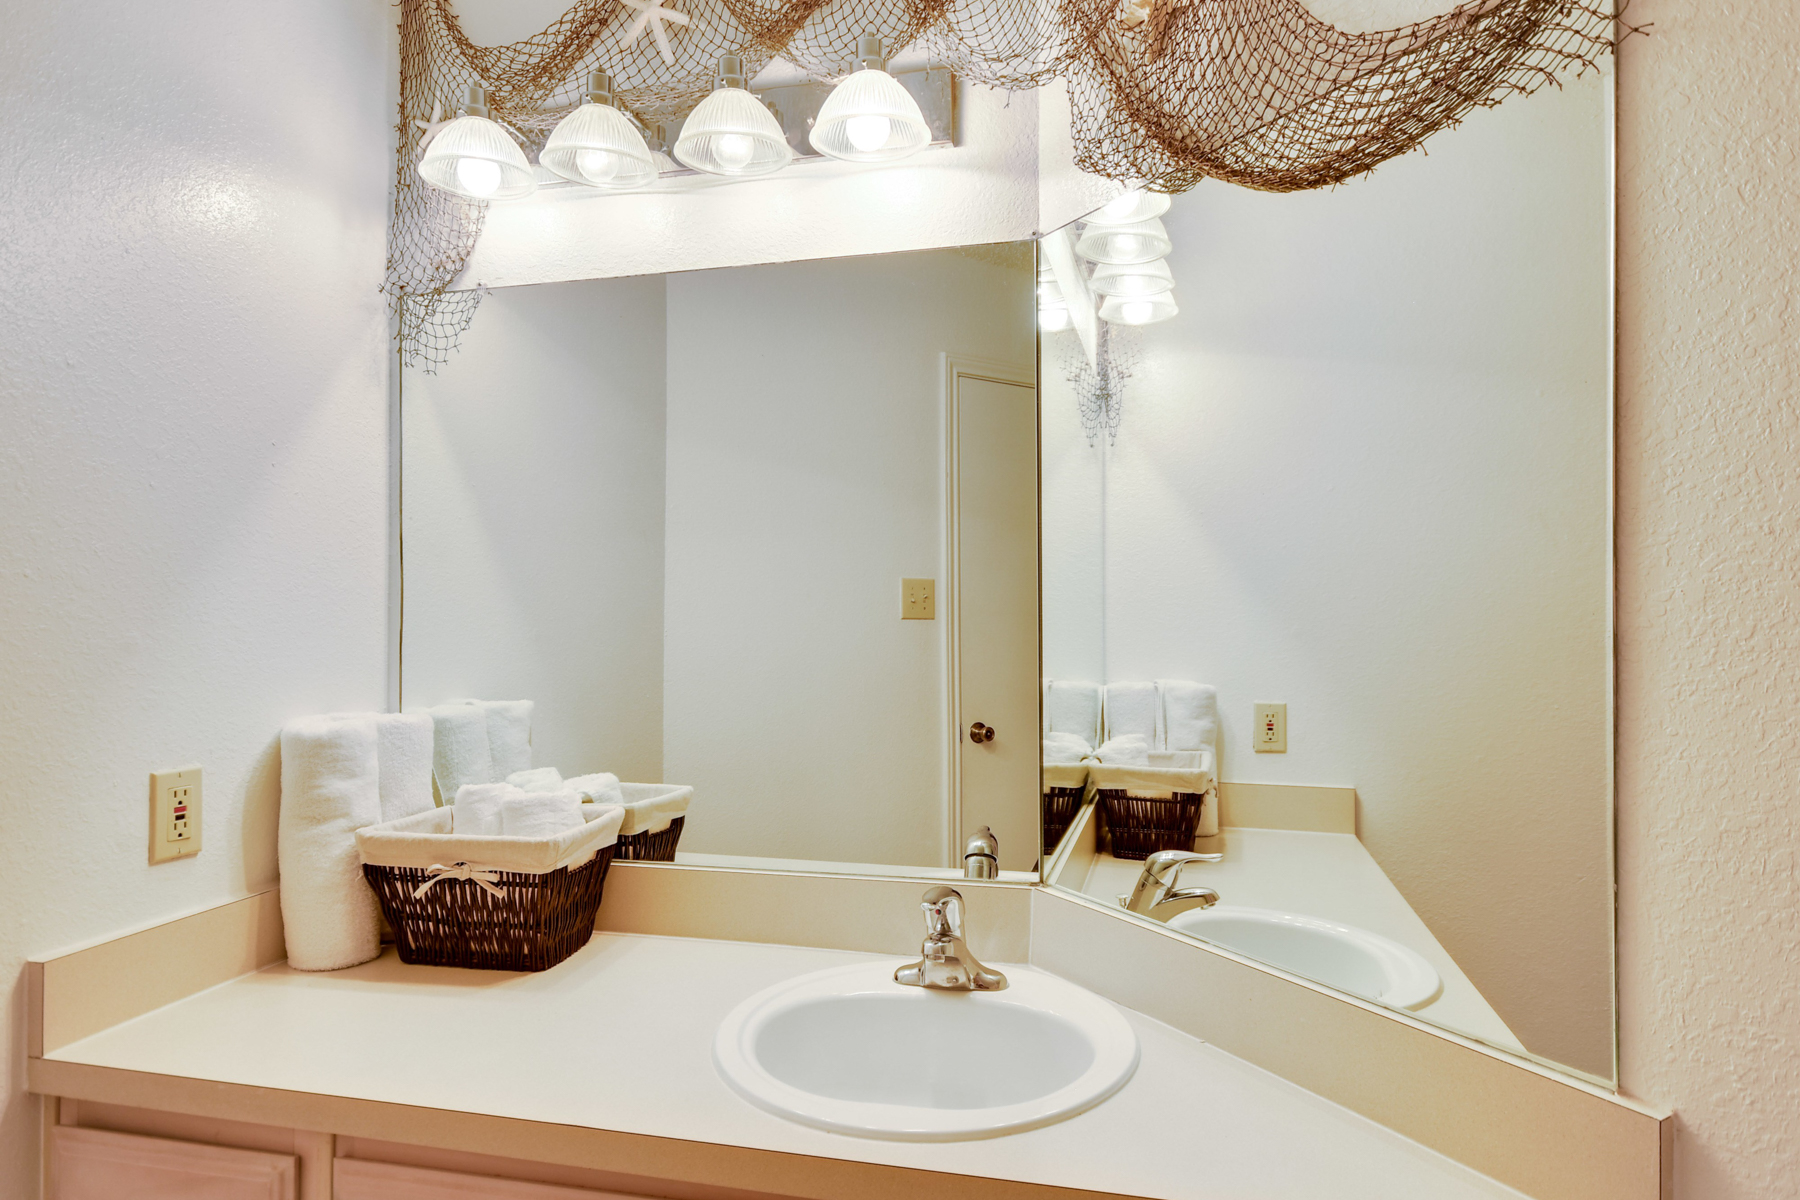 Additional photo for property listing at Incredible Condo in Corpus Christi 14721 Whitecap Blvd 366 Corpus Christi, Texas 78418 United States